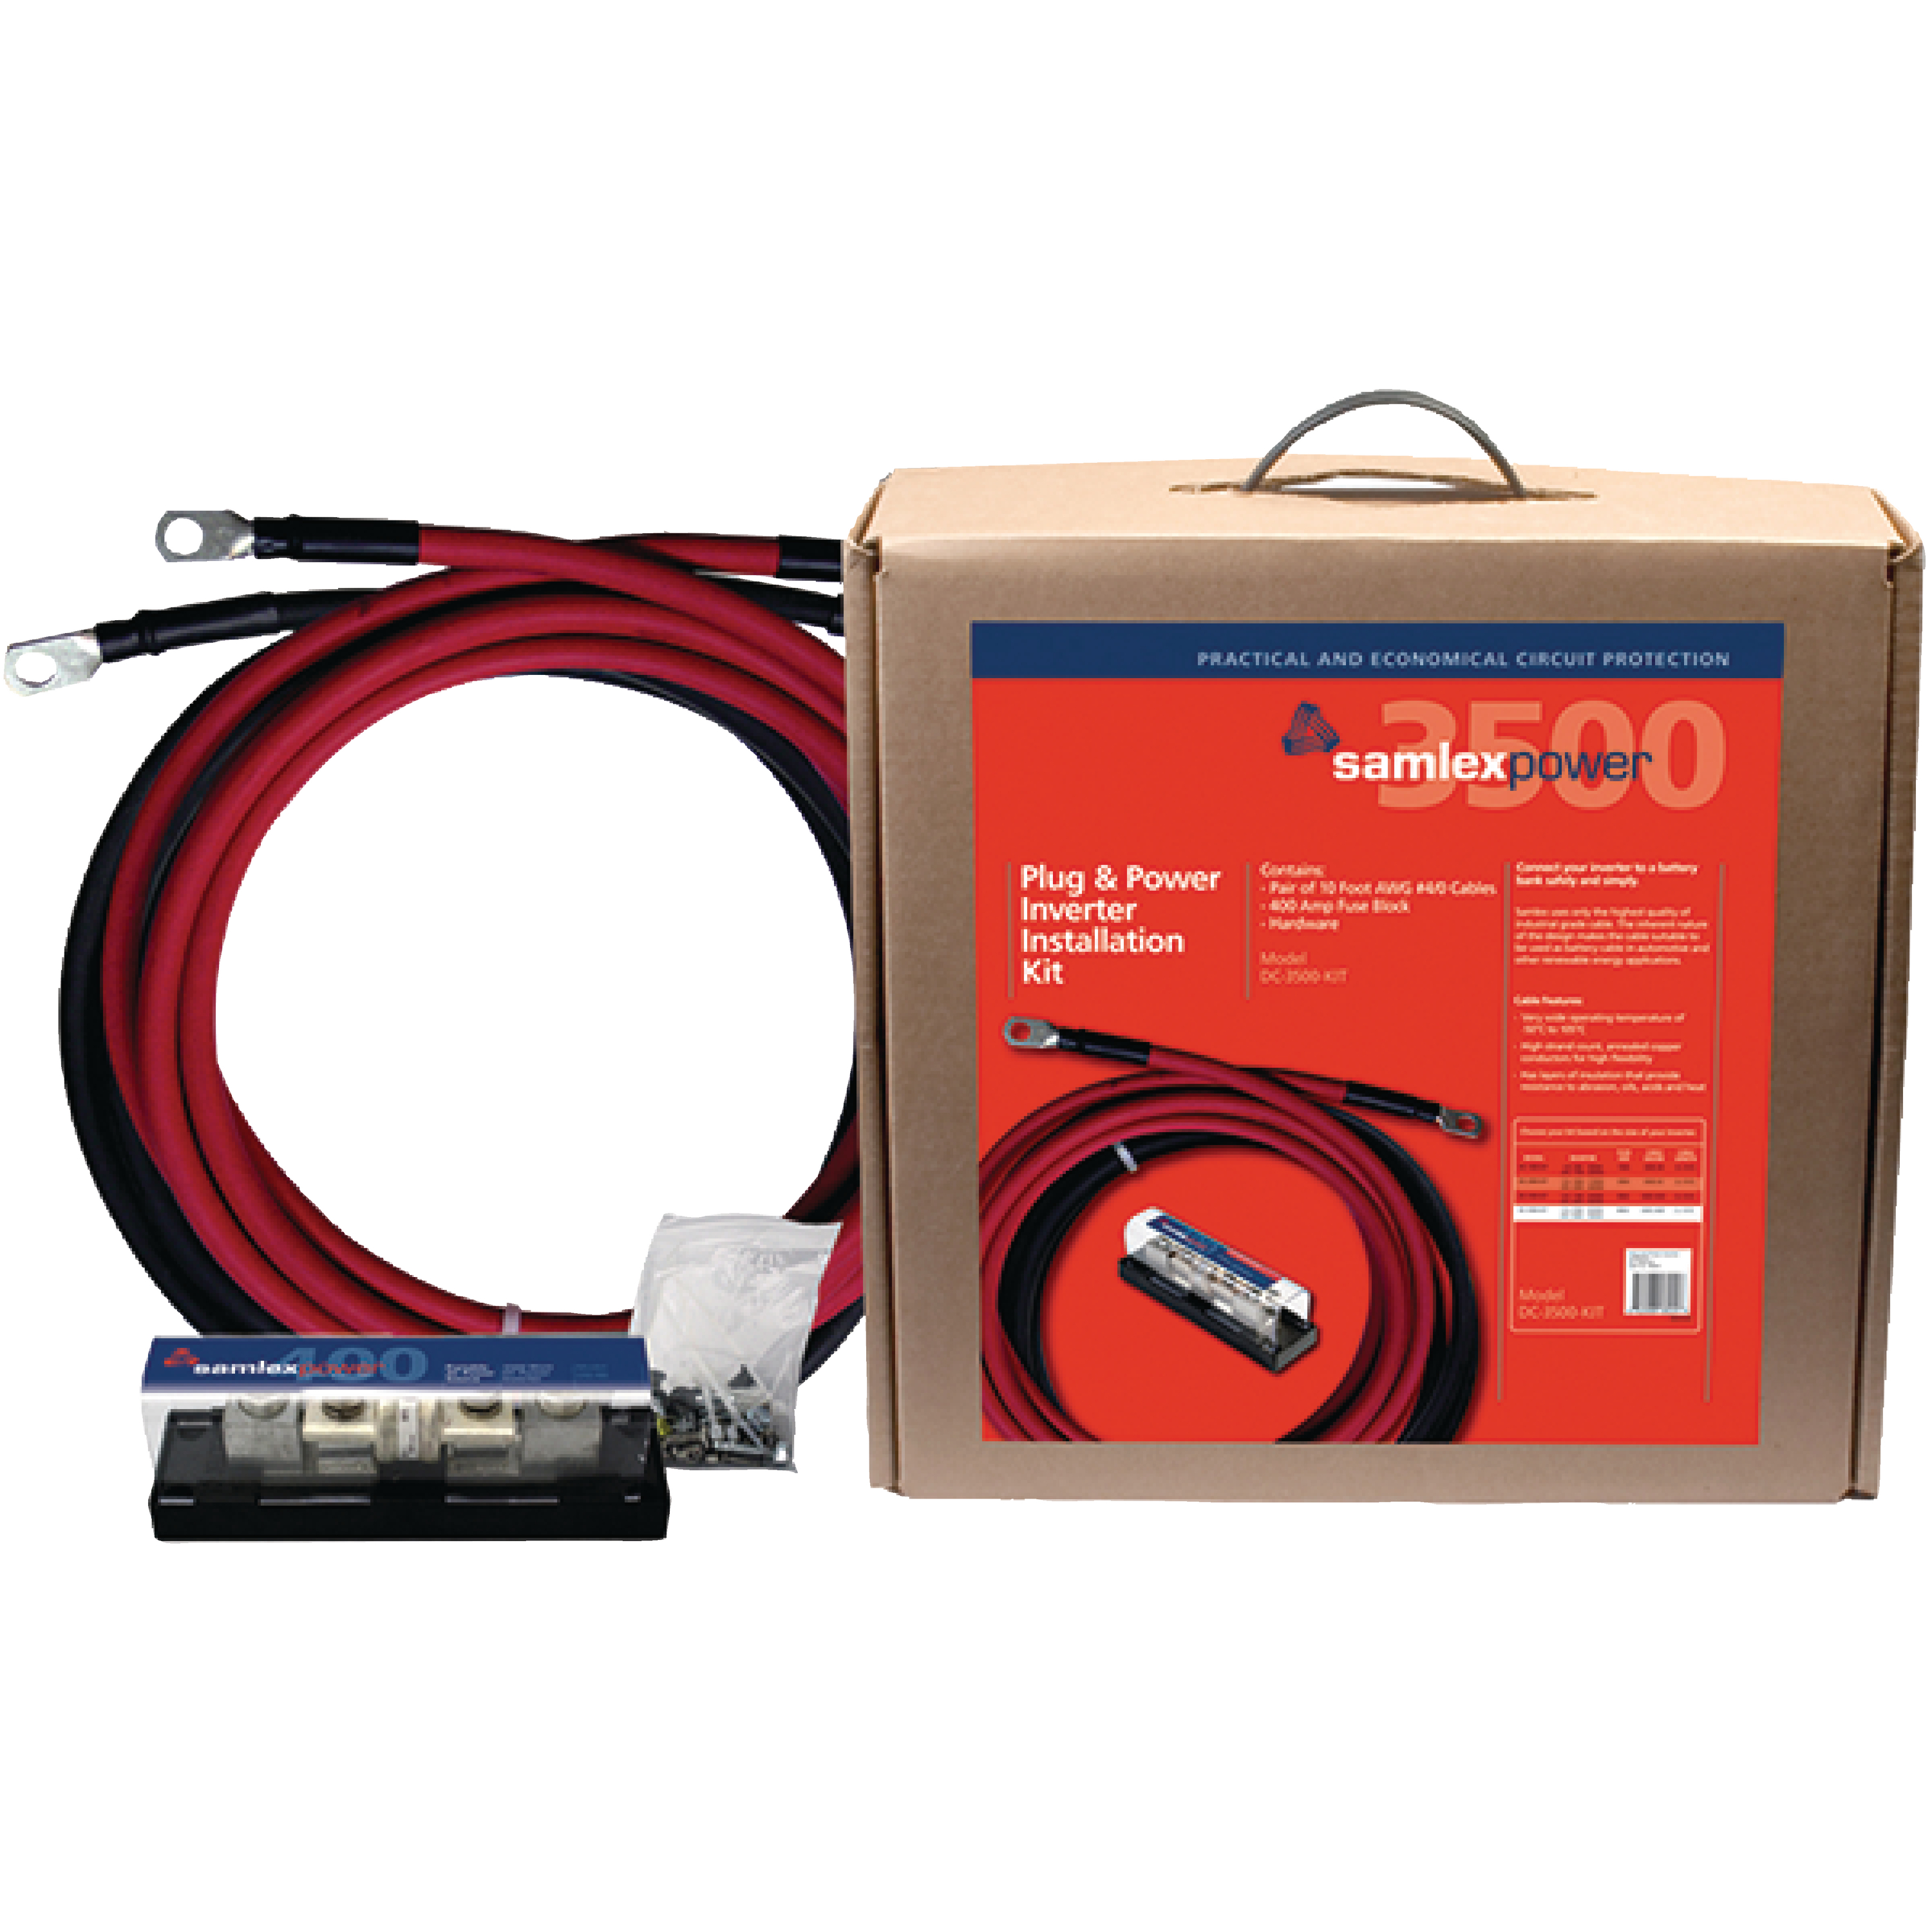 SamlexPower DC-3500-KIT 400A Fuse Inverter Installation Kit